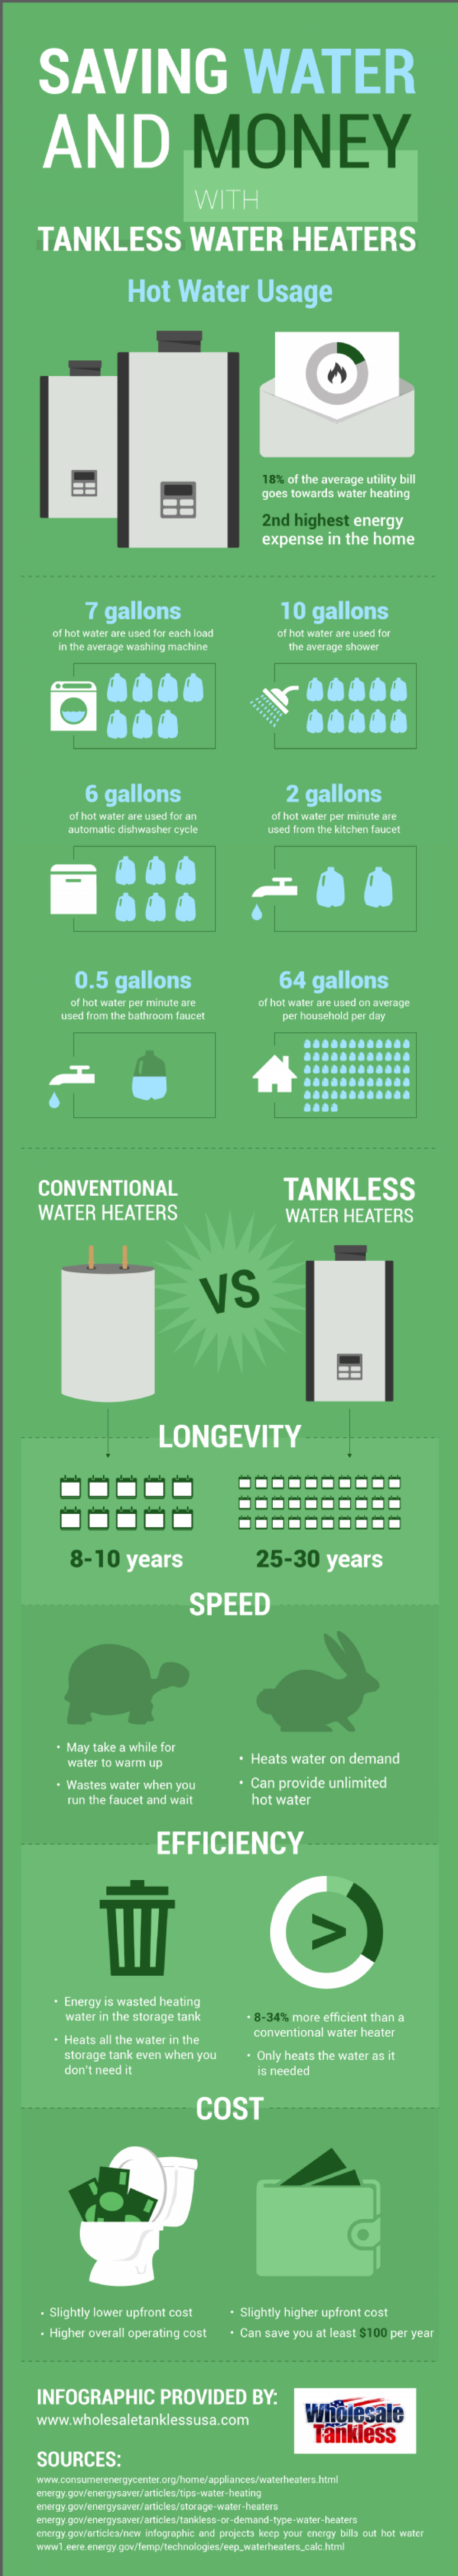 Saving Water and Money with Tankless Water Heaters Infographic